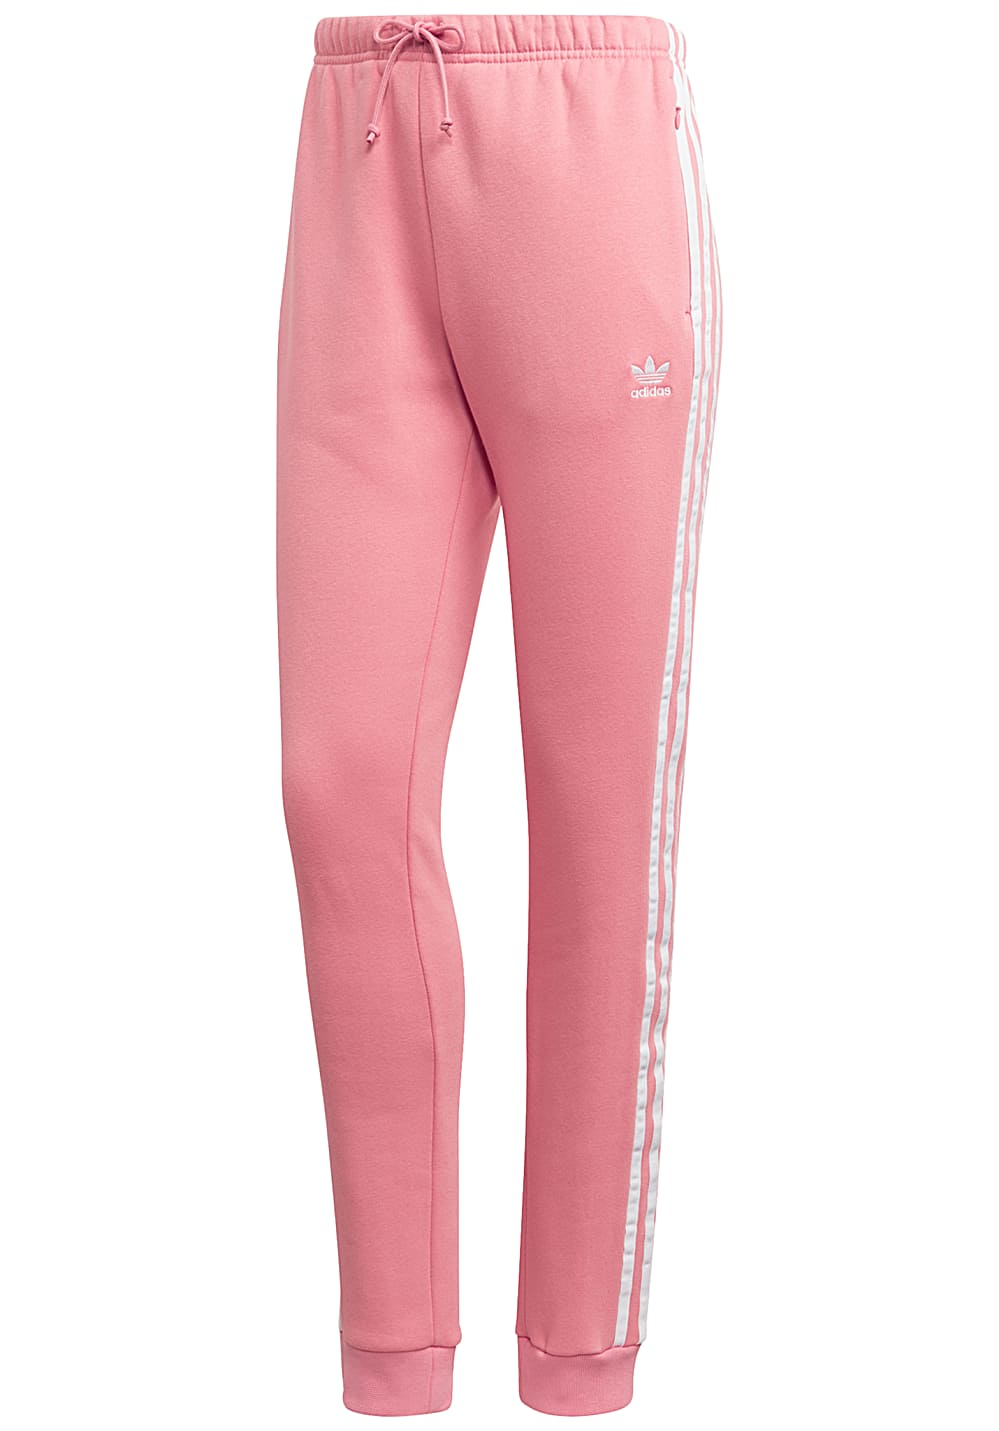 footwear catch look good shoes sale ADIDAS ORIGINALS Regular Cuff - Trackpants for Women - Pink